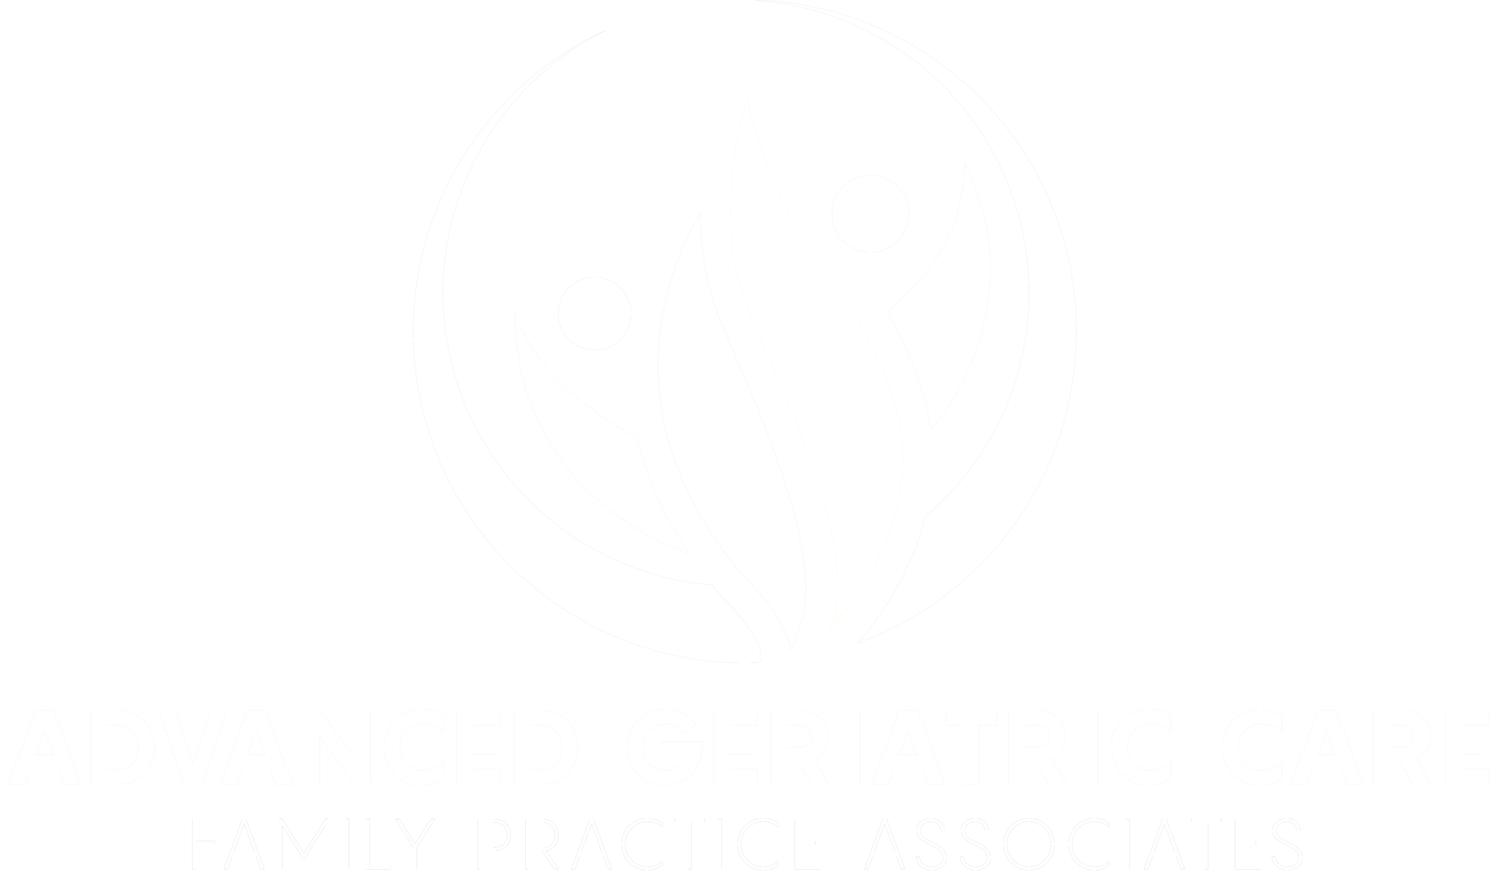 Advanced Geriatric Care Family Practice Associates